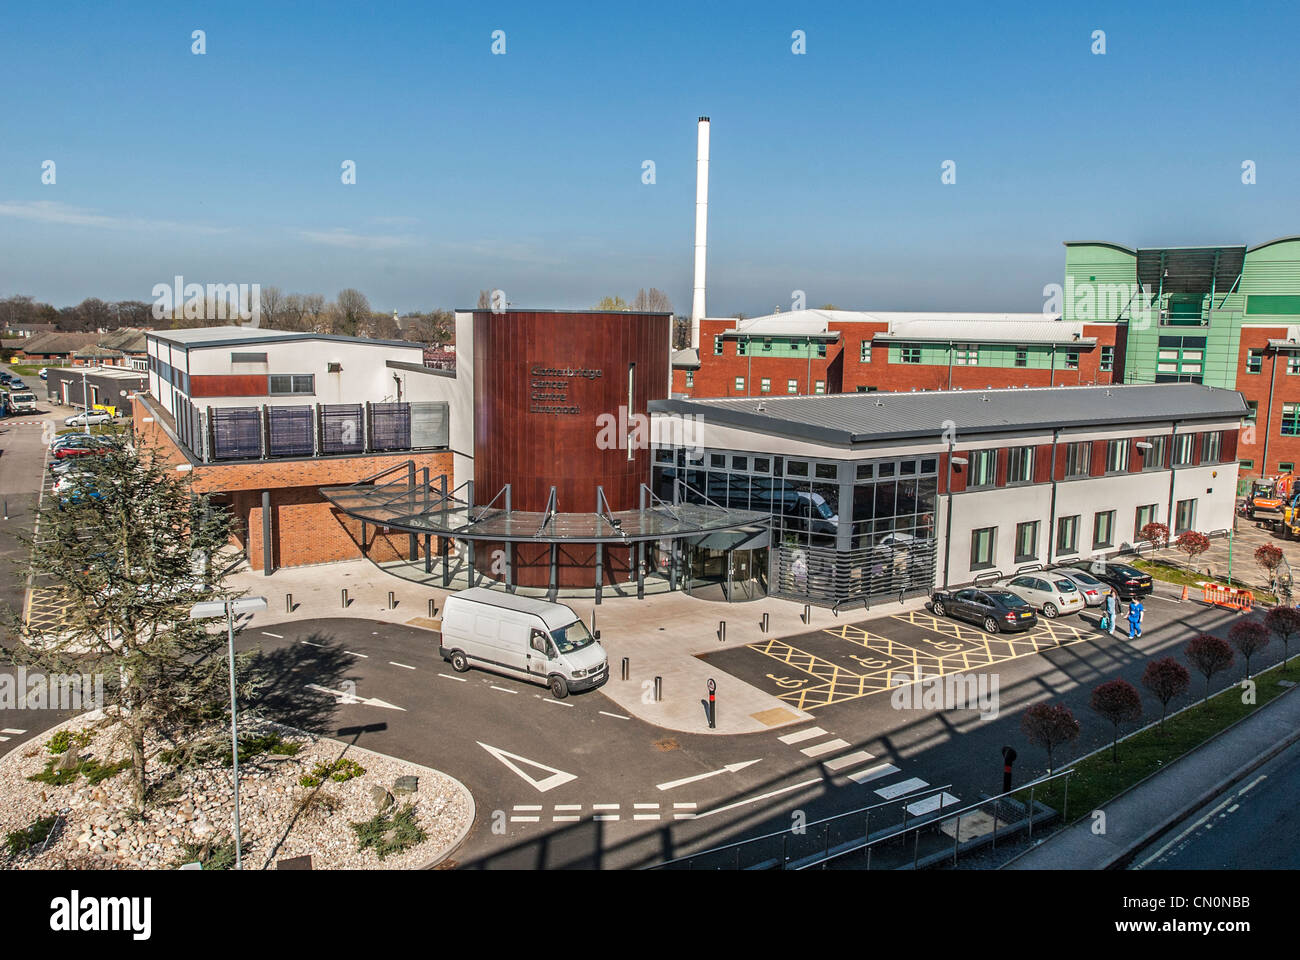 Clatterbridge Cancer Centre at the Aintree hospital in Liverpool. - Stock Image